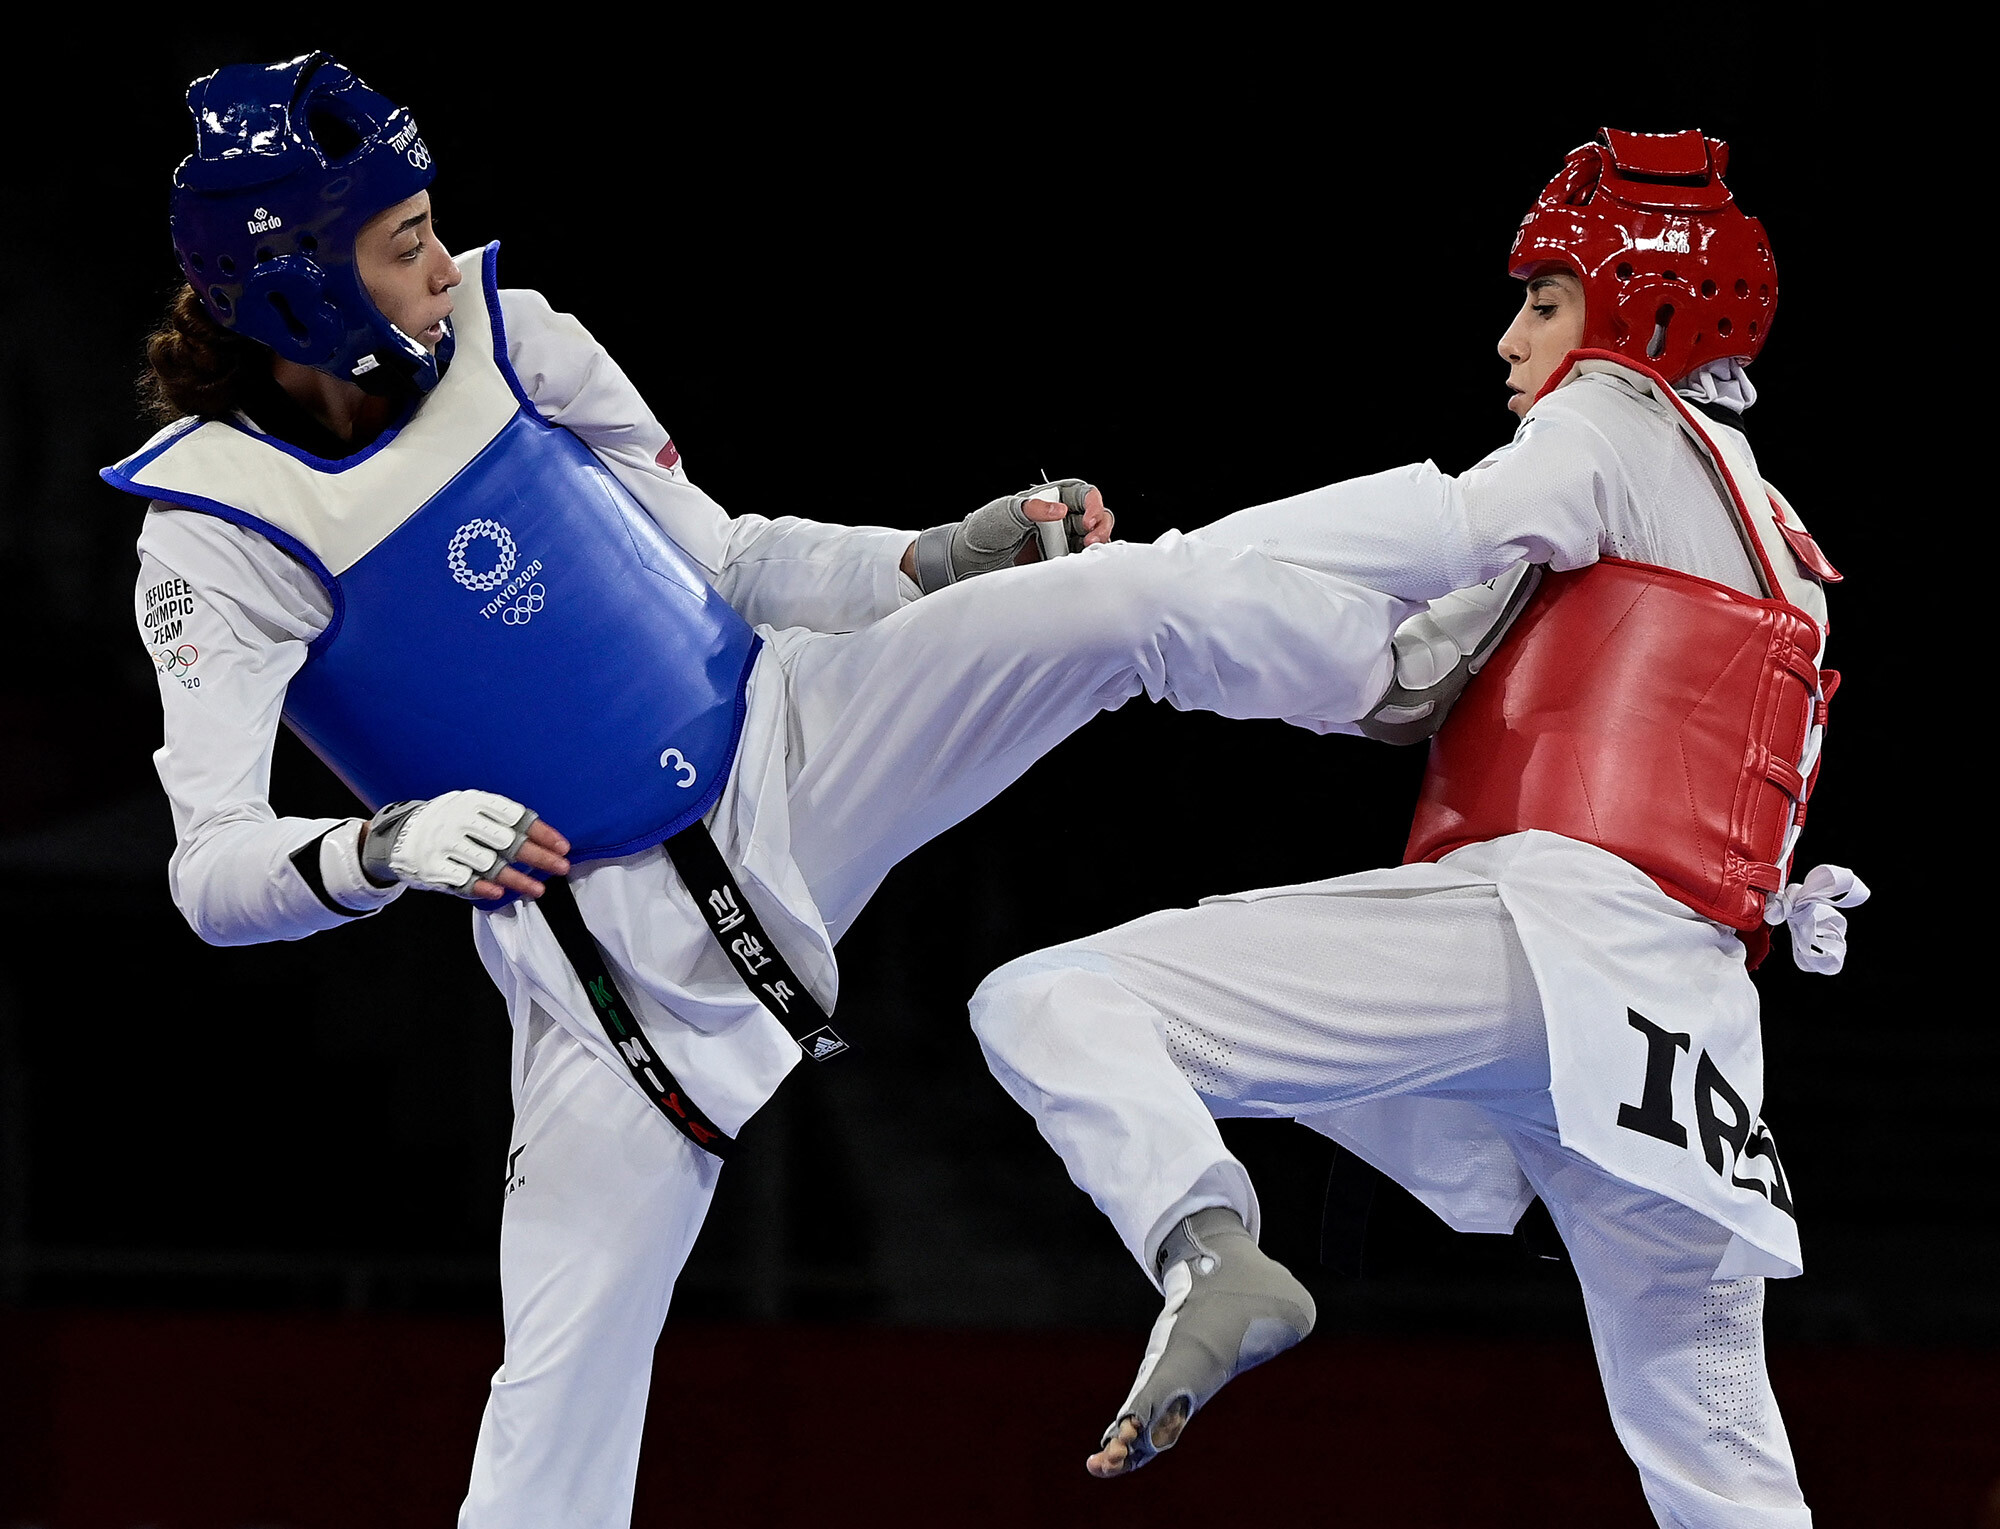 <i>Javier Soriano/AFP/Getty Images</i><br/>Refugee Olympic Team's Kimia Alizadeh (Blue) and Iran's Nahid Kiyani Chandeh (Red) compete in the taekwondo women's -57kg elimination round bout during the Tokyo 2020 Olympic Games at the Makuhari Messe Hall in Tokyo on July 25.